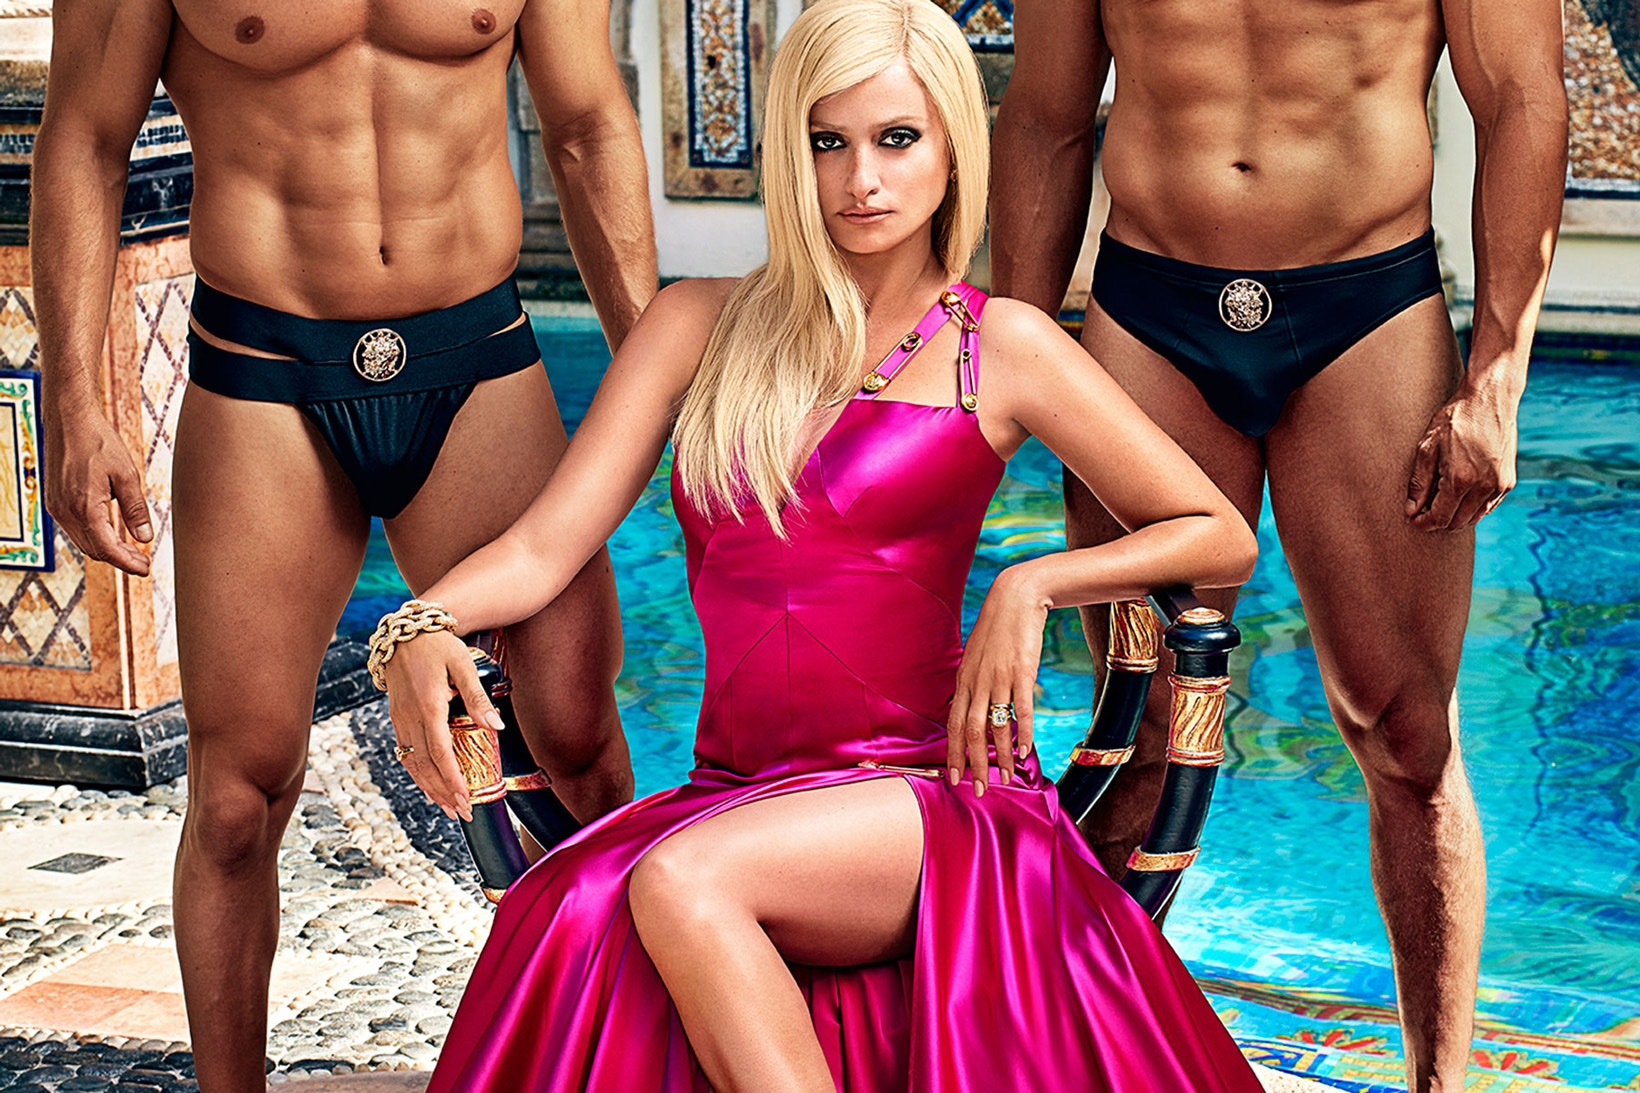 assassination-gianni-versace-family-statement-approve-1-1.jpg